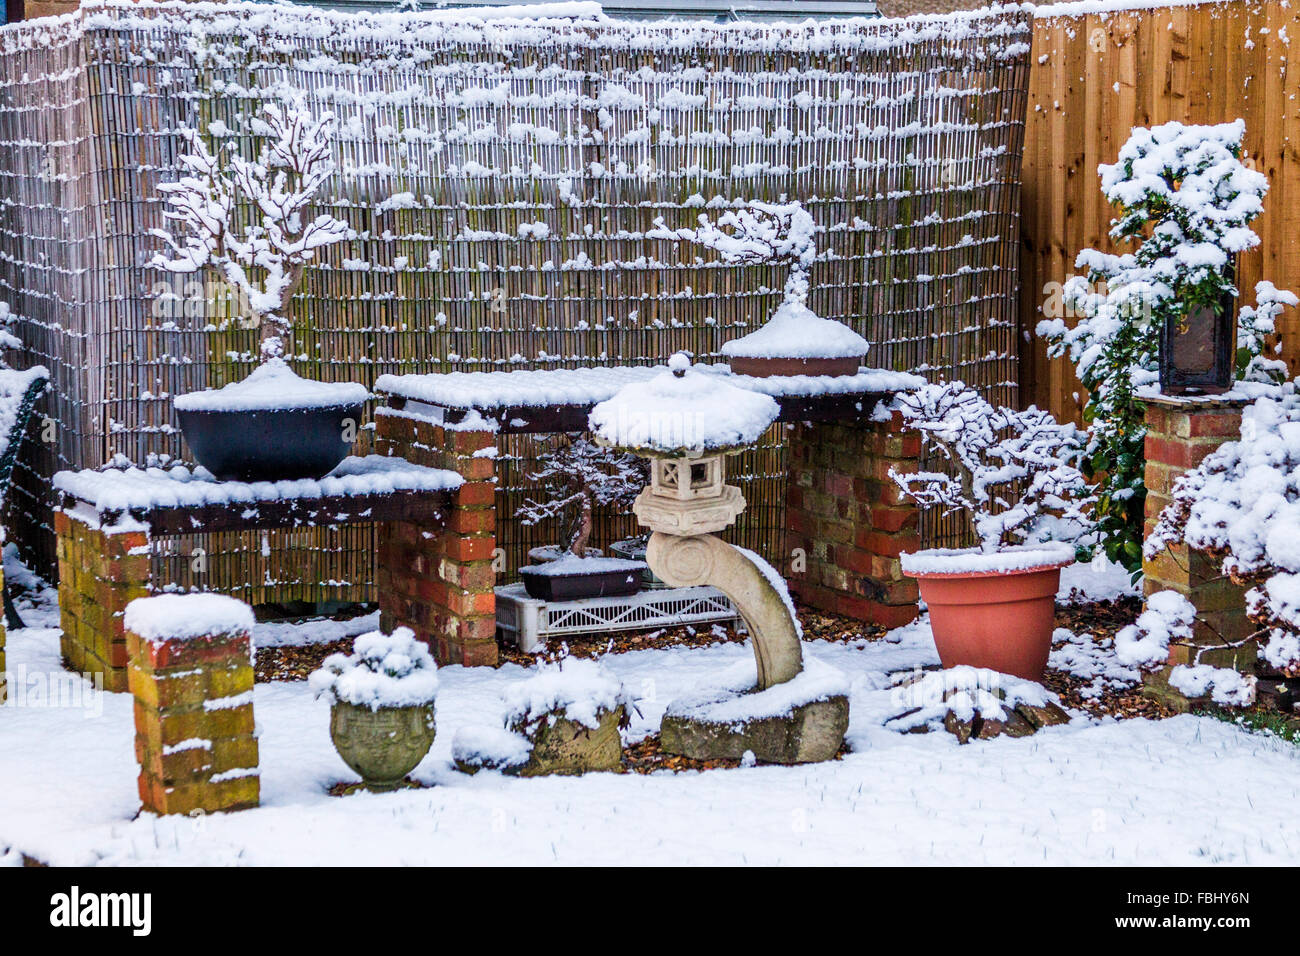 Northampton, UK. 17th January 2016.  Bonsia display covered in show which has fallen overnight. Credit:  Keith J - Stock Image